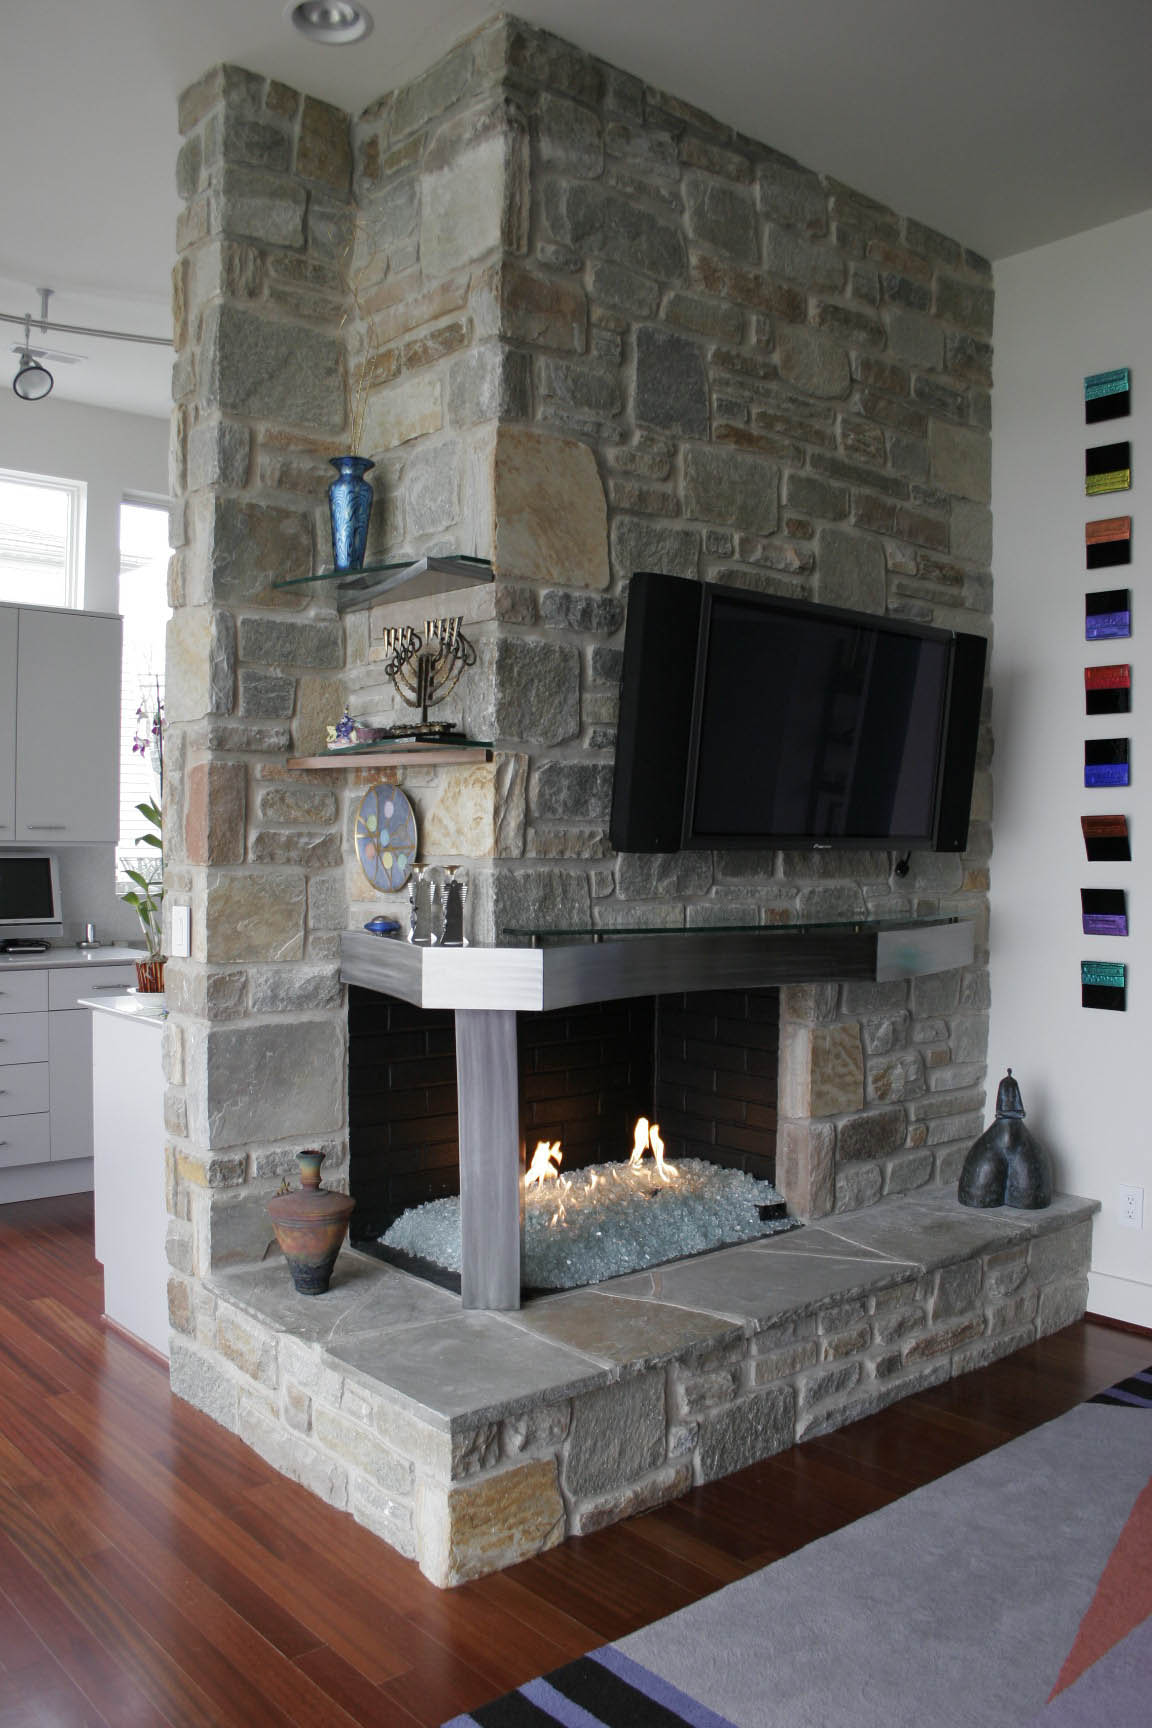 Unique mantle and column on open gas fireplace